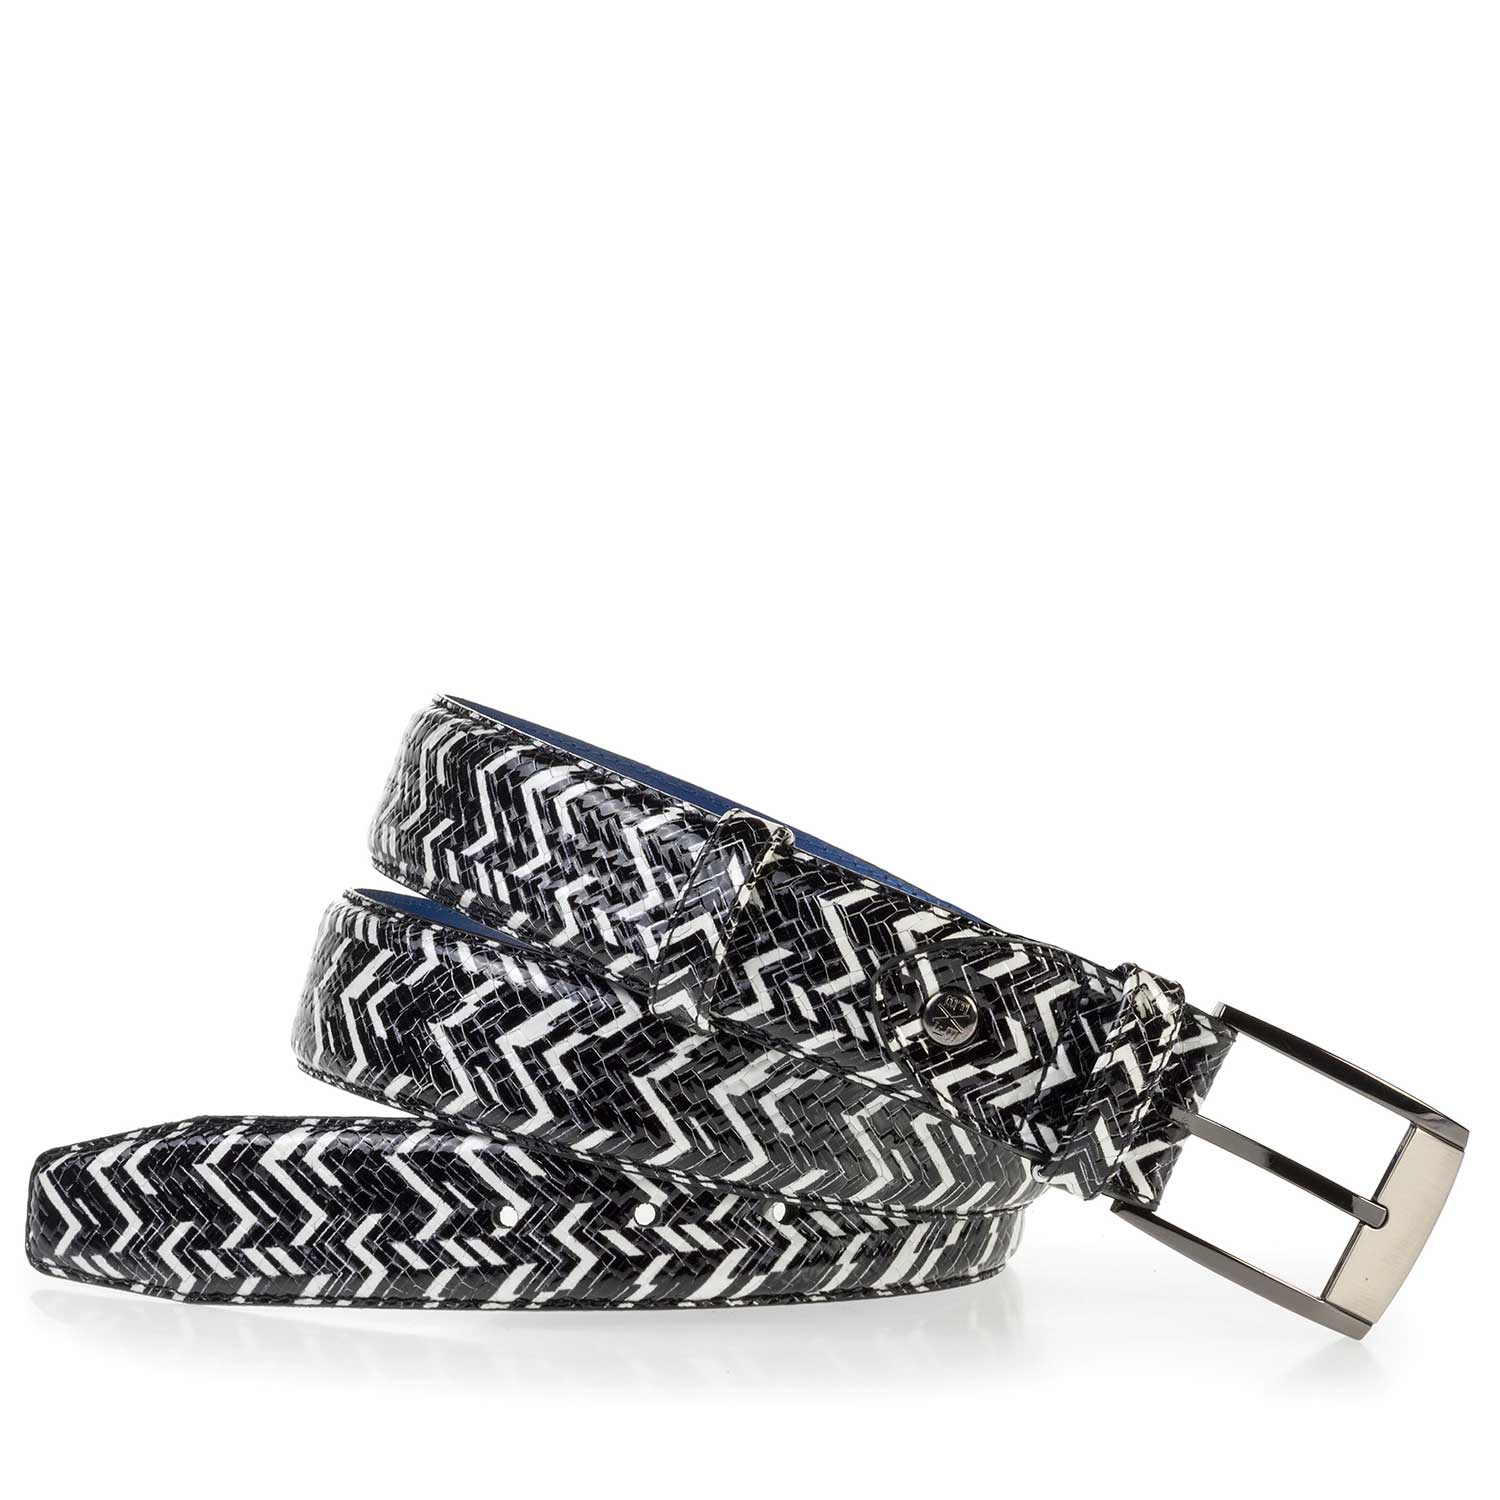 75180/01 - Patterned black-white patent leather belt